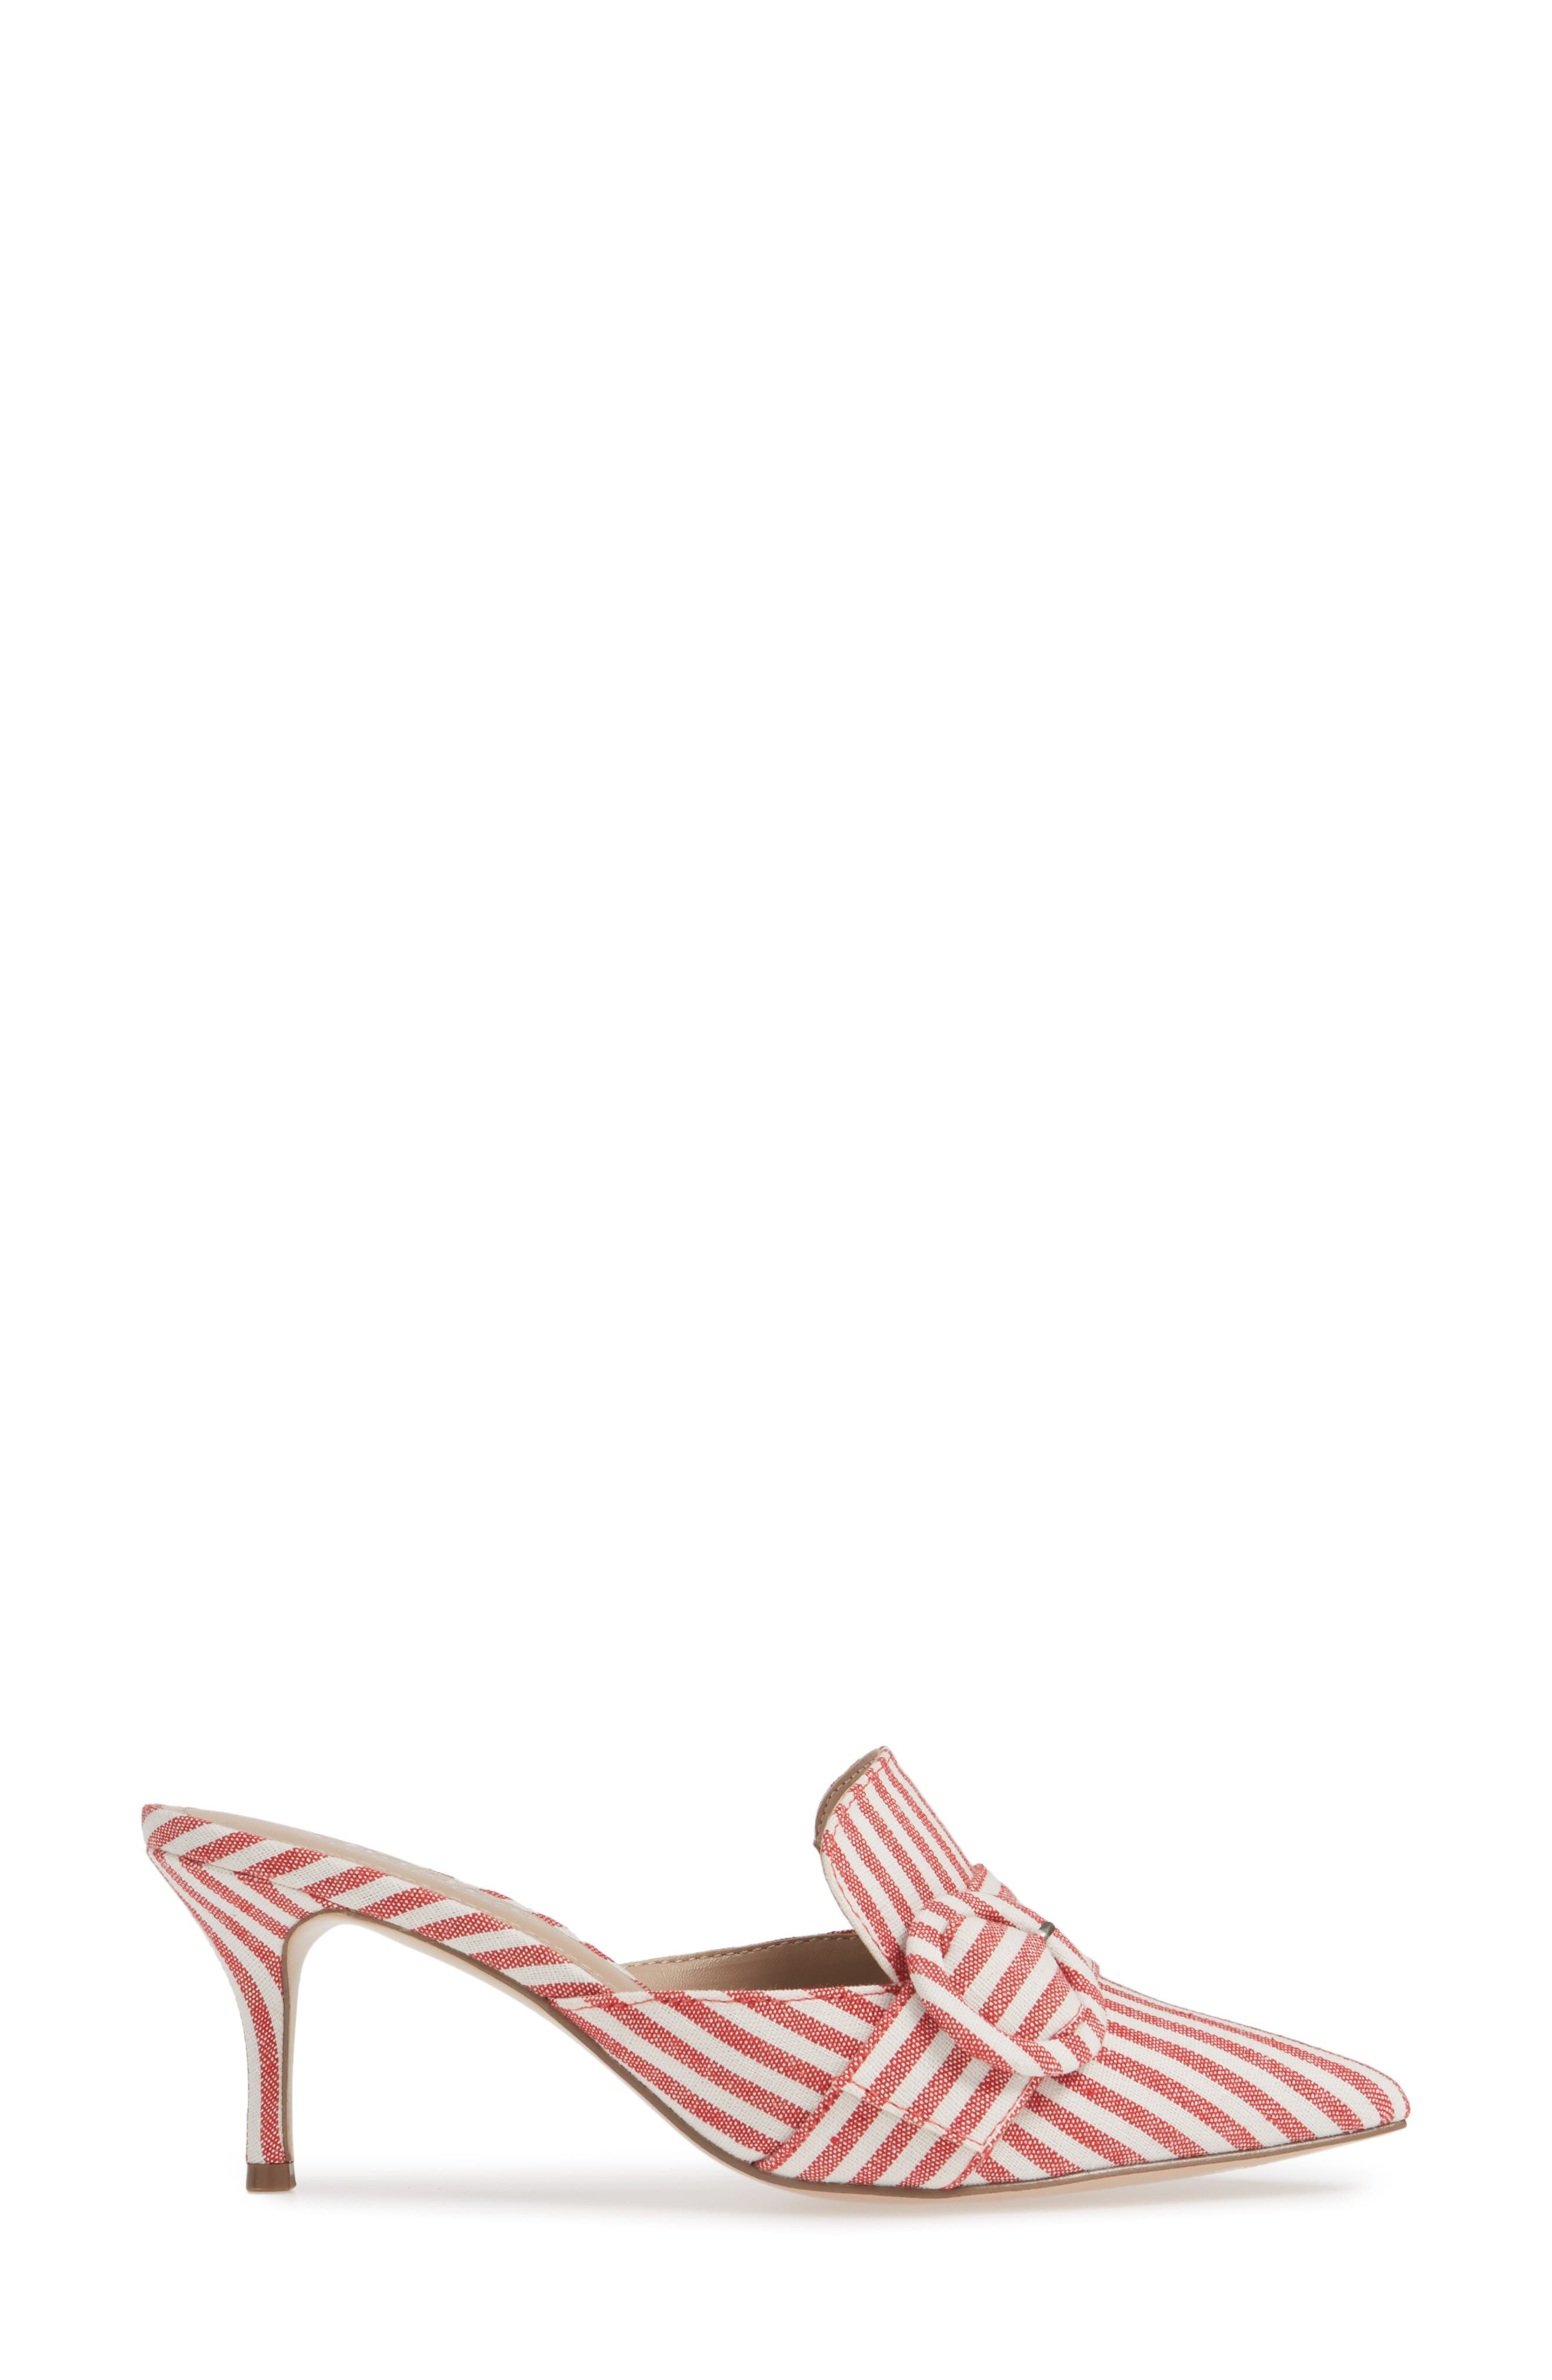 CHARLES BY CHARLES DAVID, Acapulco Mule, Alternate thumbnail 3, color, CANDY RED FABRIC